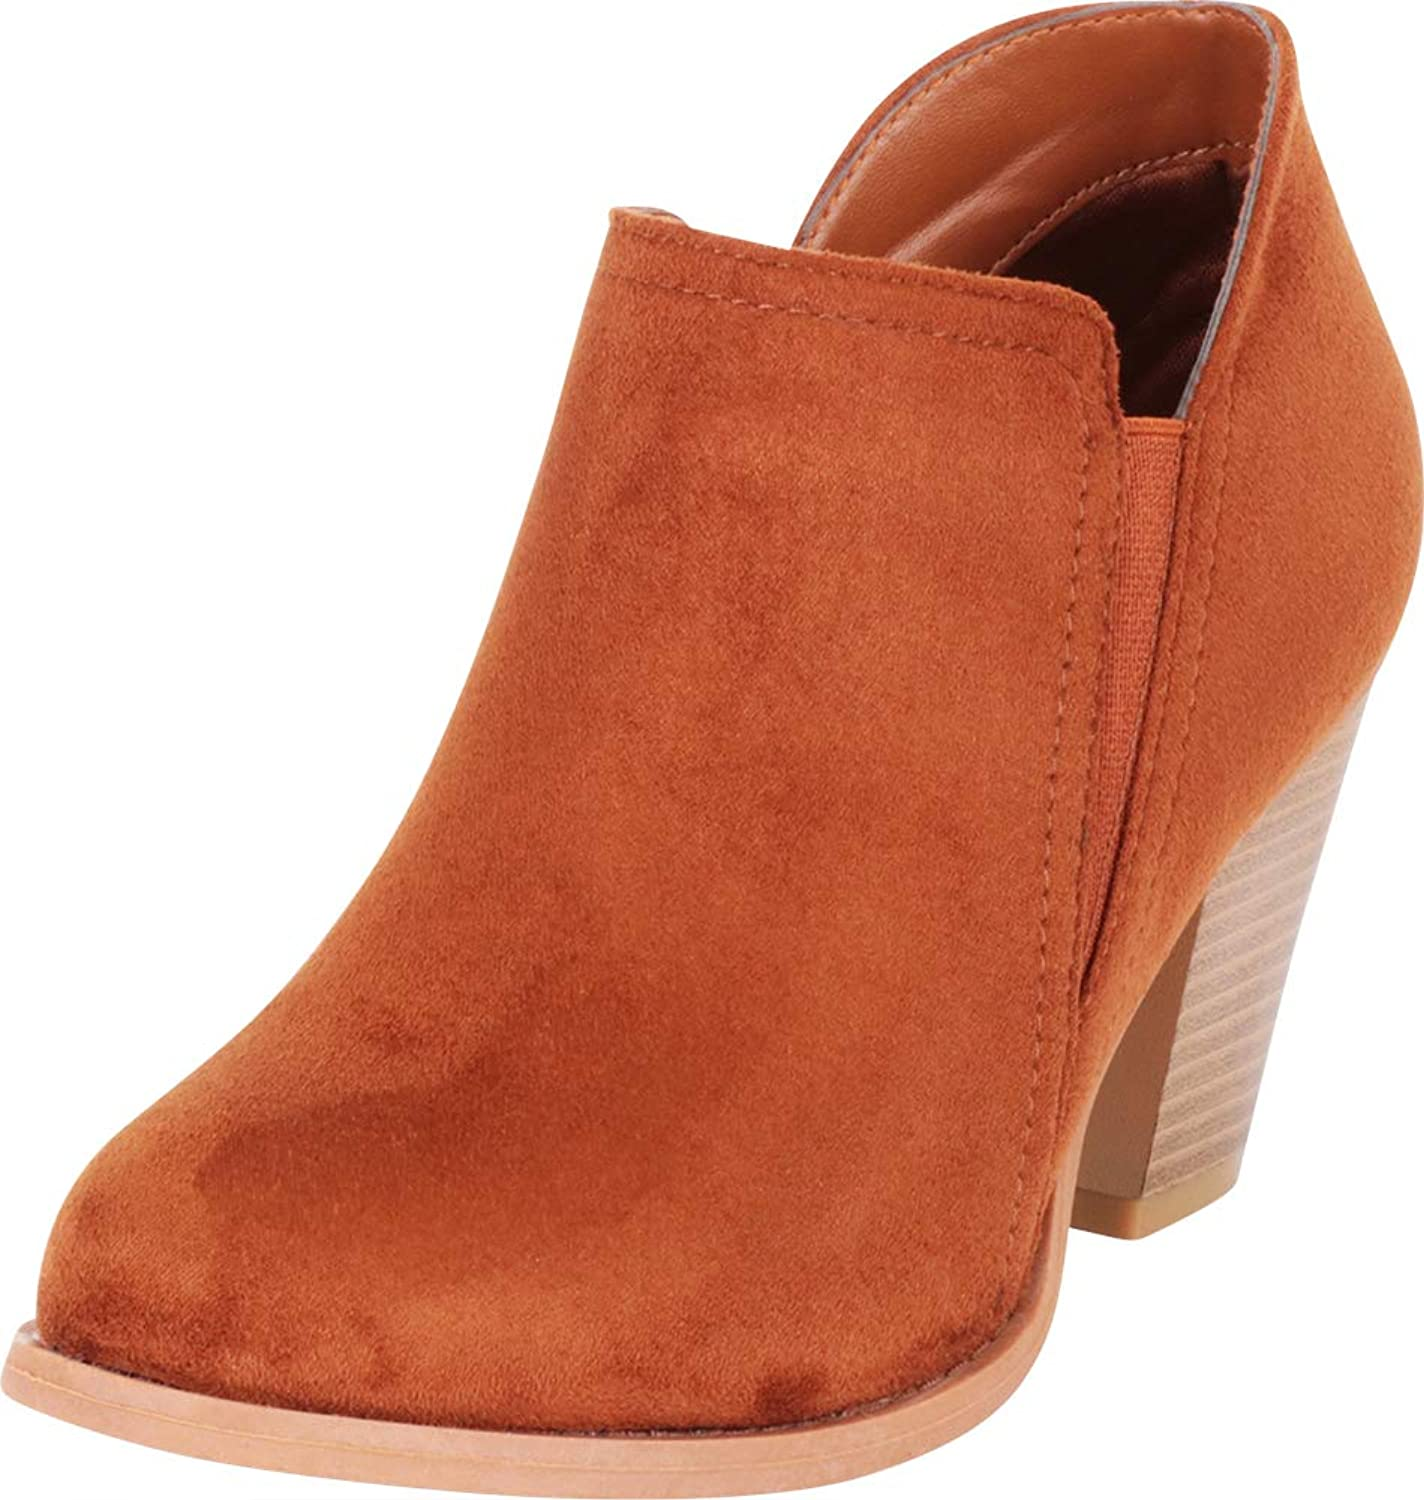 Cambridge Select Women's Side V Cutout Stretch Stacked High Heel Shootie Ankle Bootie